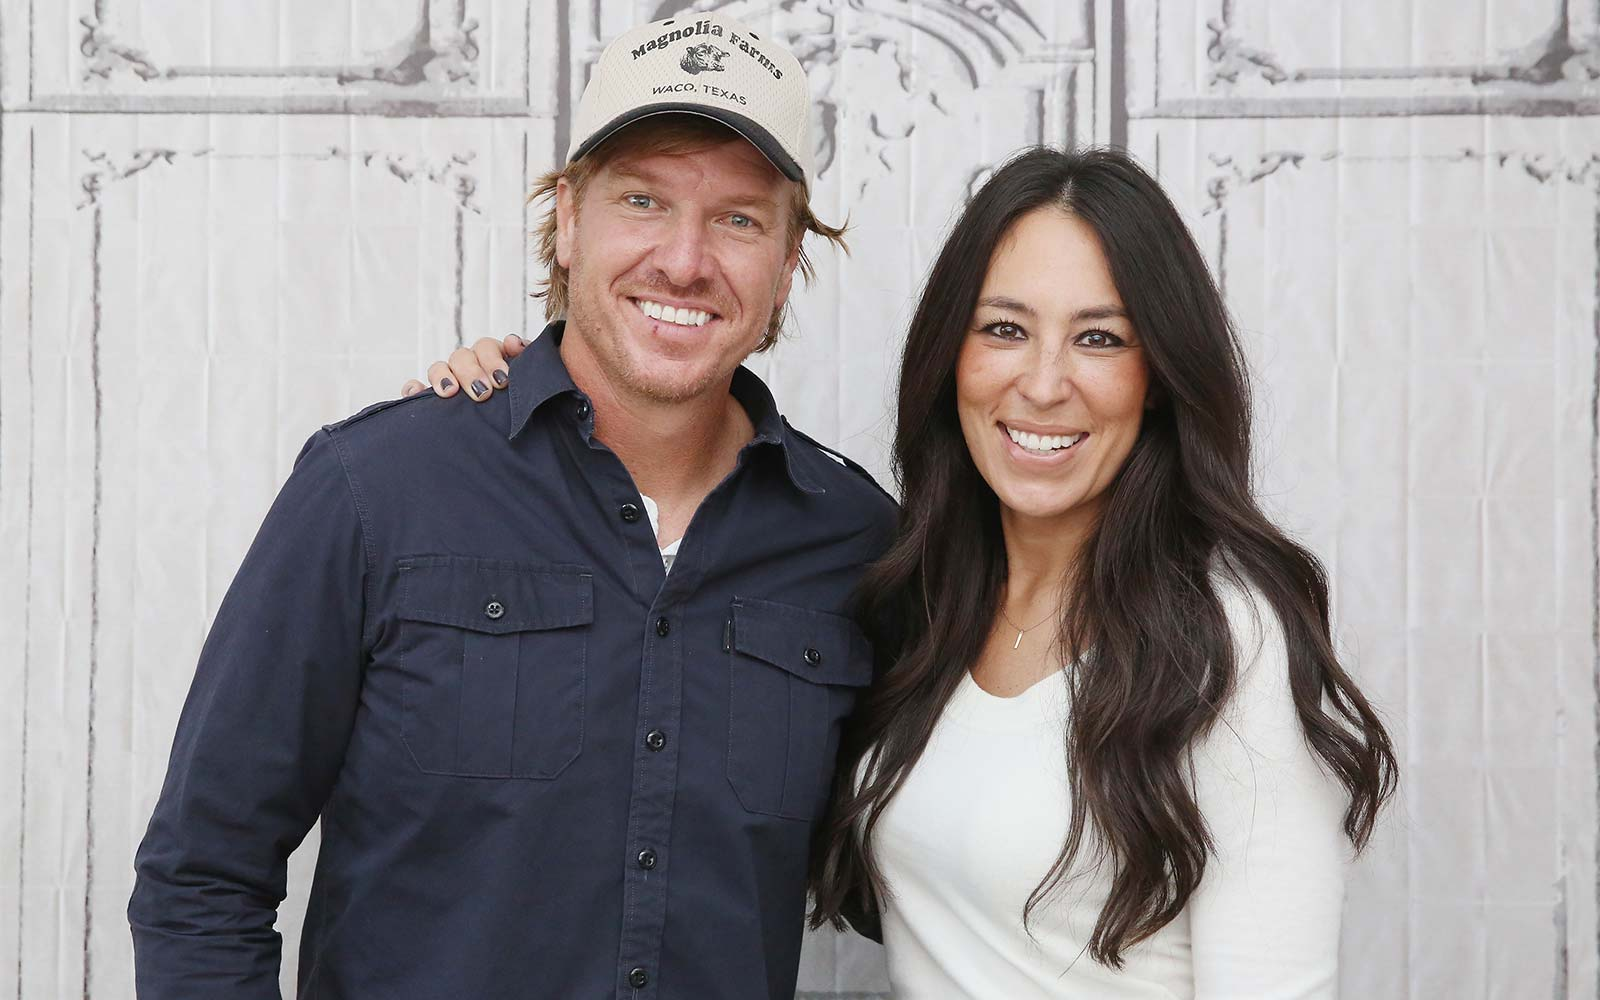 Holy Shiplap! Chip and Joanna Gaines Just Announced a New Target Line